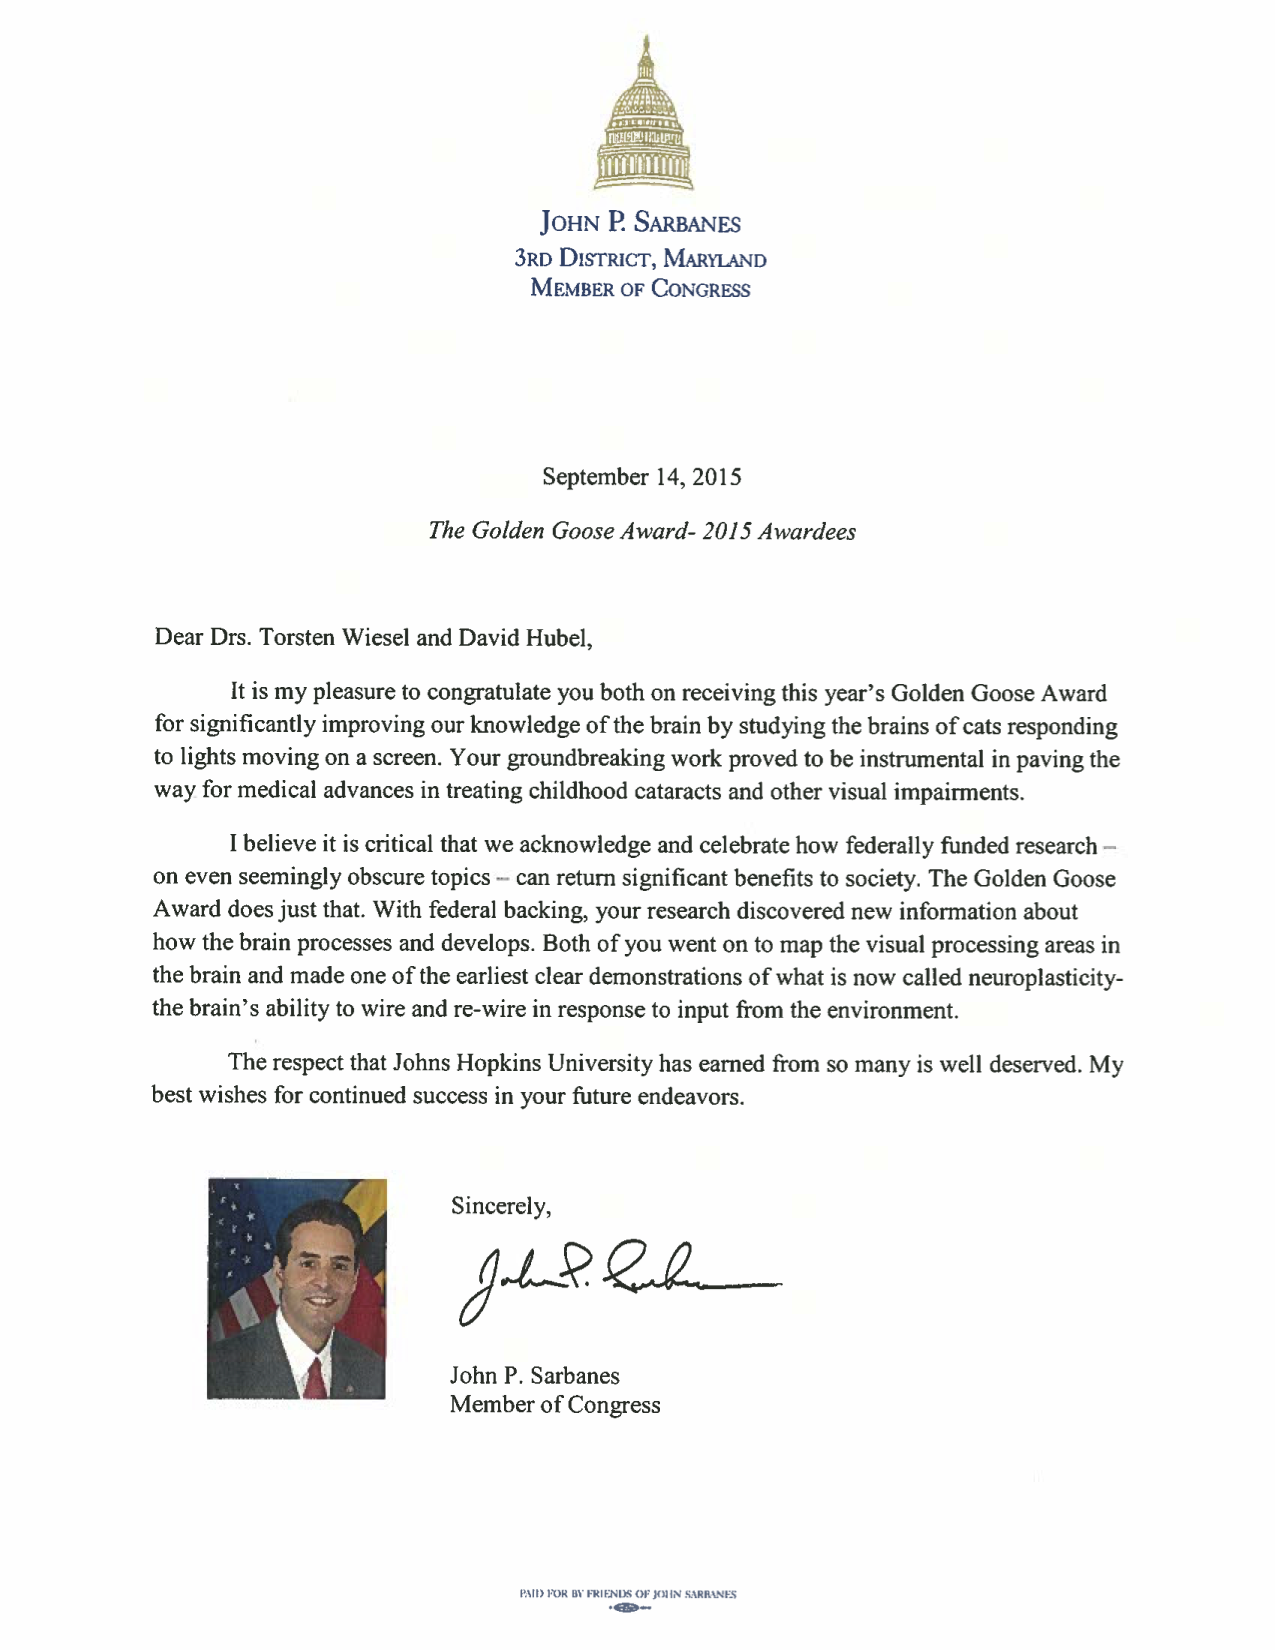 Sarbanes_Congratulations letter for Golden Goose award.png